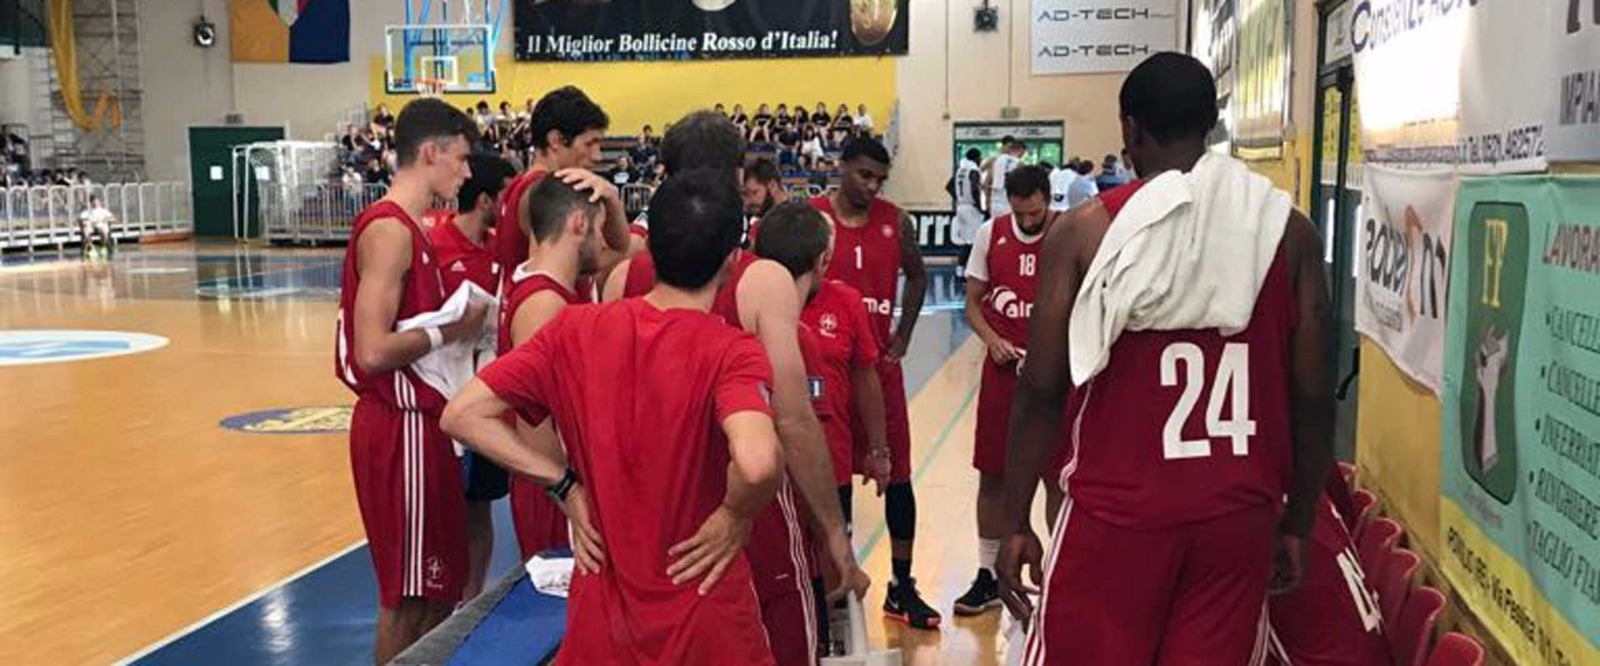 Alma pallacanestro Trieste time-out